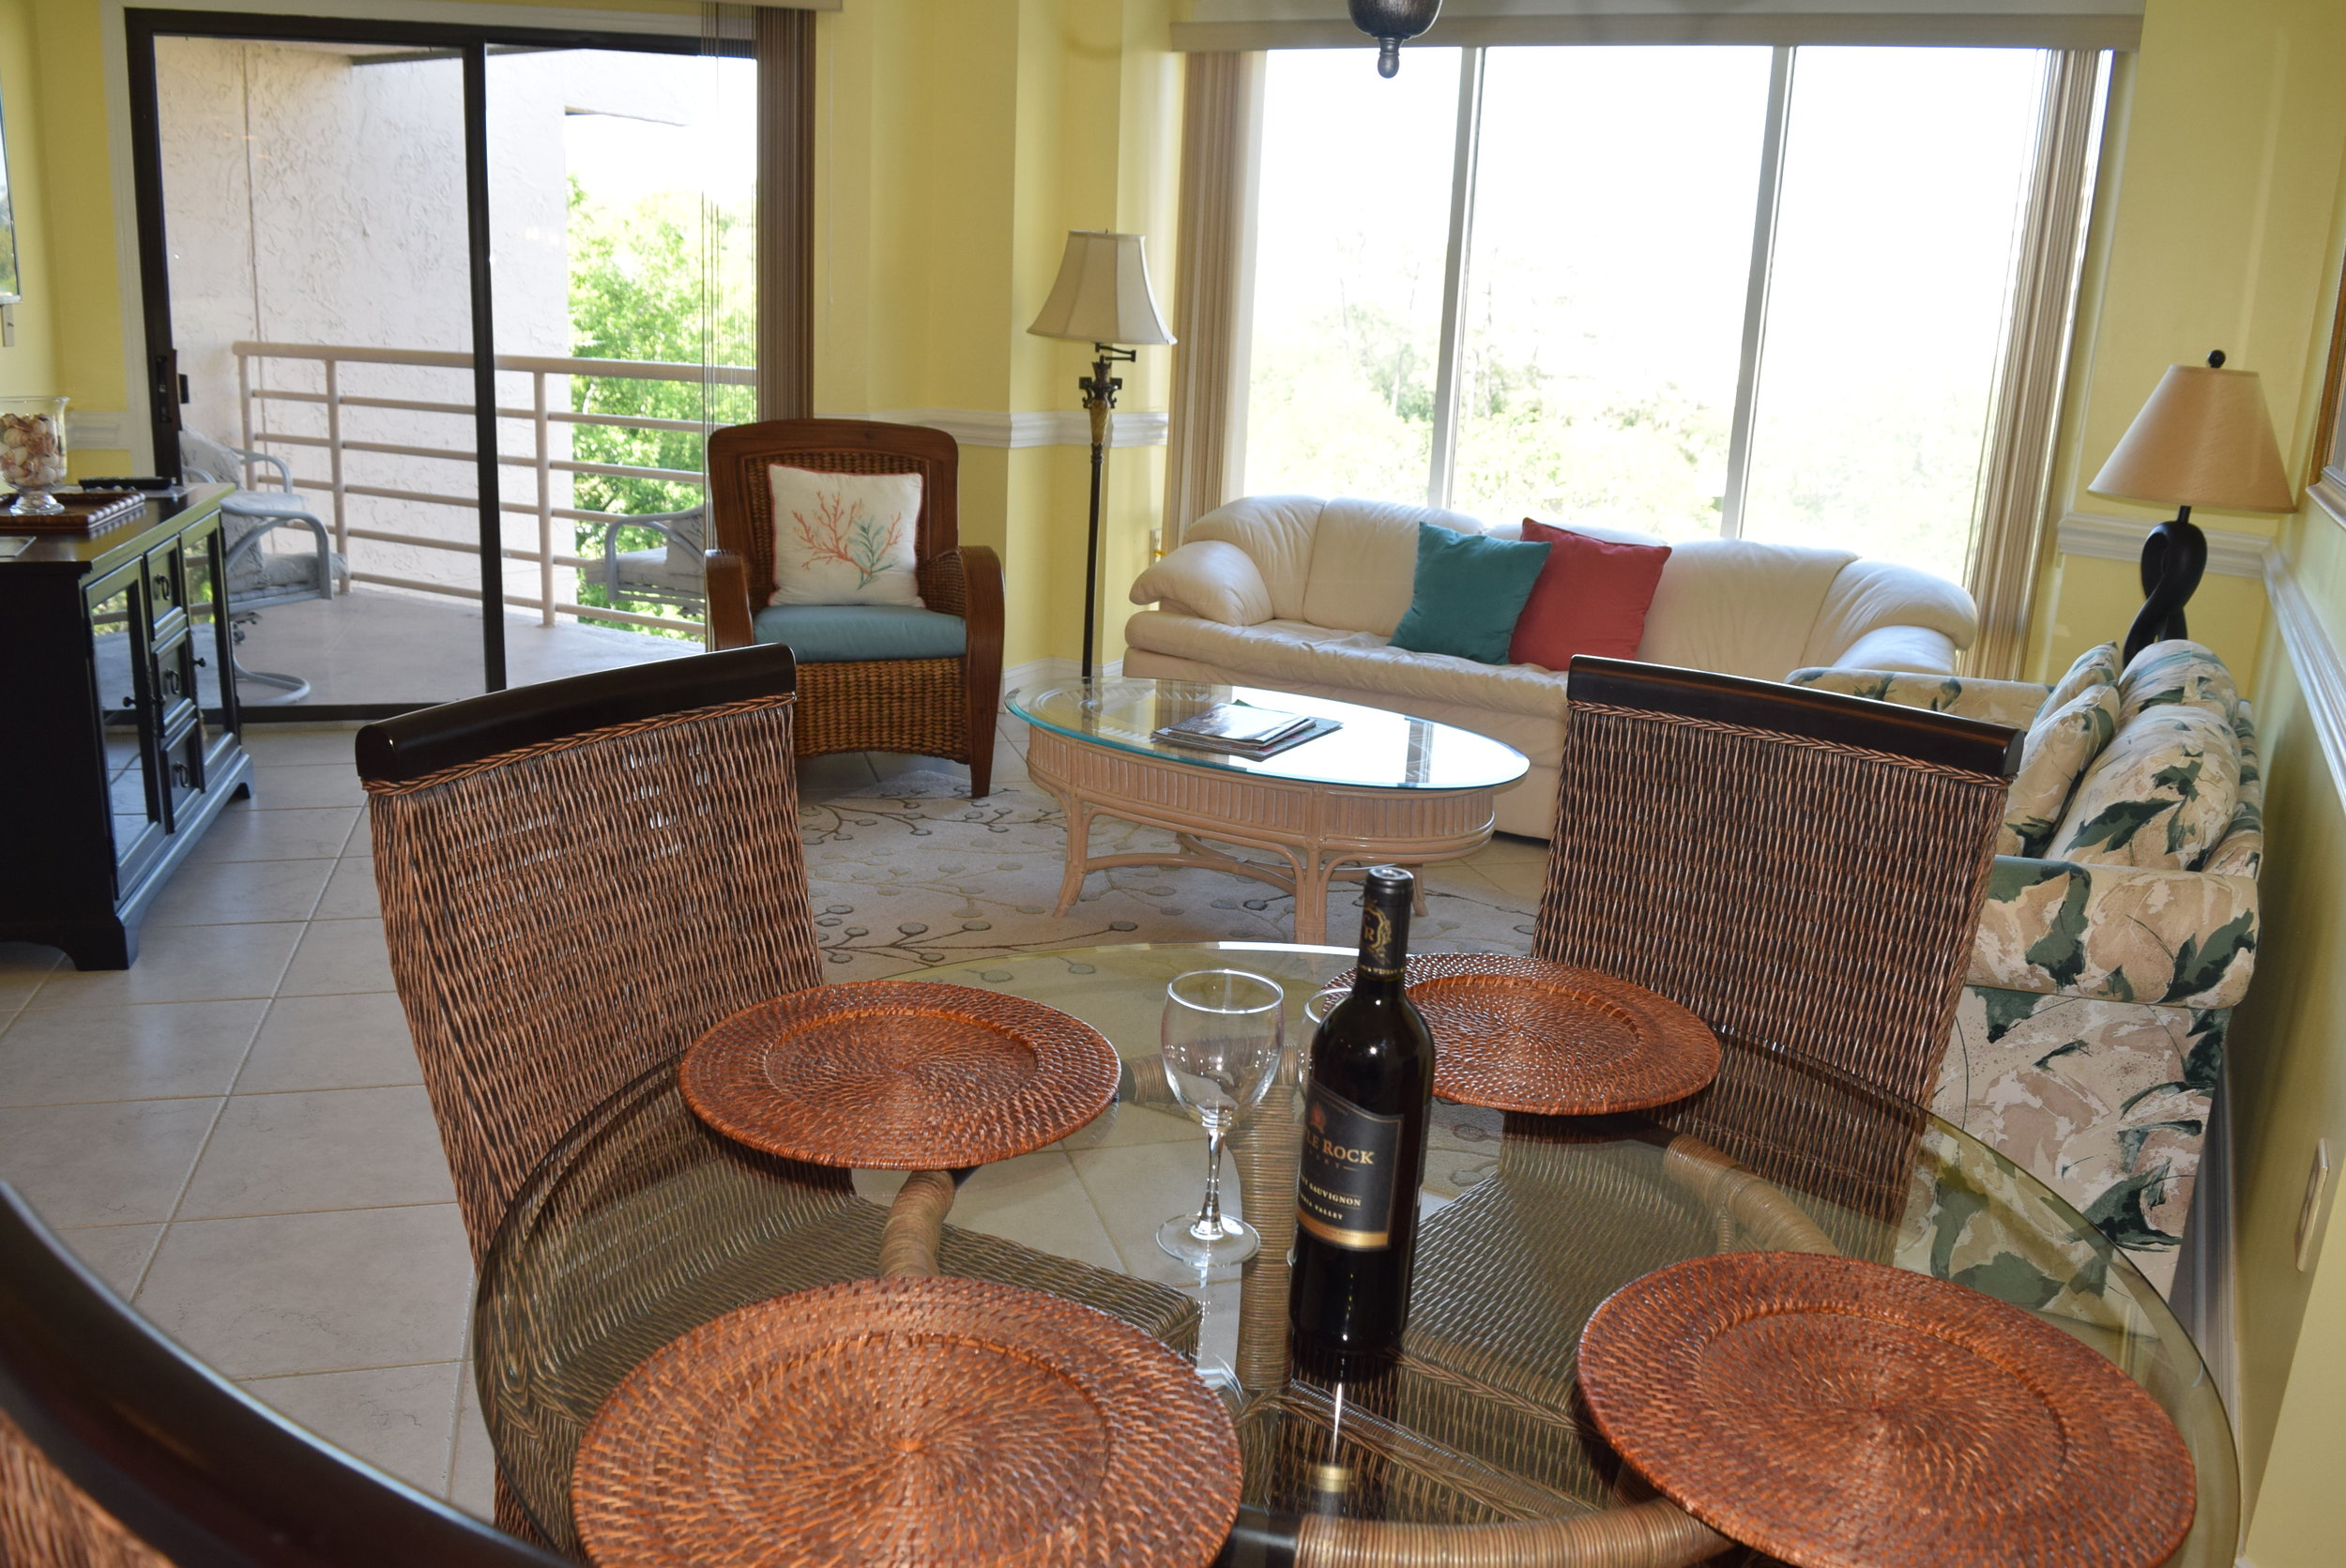 """Palmetto Dunes Resort     Penthouse condo in Palmetto Dunes, just steps to the ocean. 2 bedrooms, 2 full baths, fully equipped Kitchen with washer & dryer. Entire Condo has been painted with fresh Carribbean colors, new chair rail, all new doors, bedding, 58"""" smart TV in living room, 43"""" Smart TV in guest room, new carpet in bedrooms and more. Oceanfront pool, hot tub, grilling area & indoor pool, hot tub, sauna & gym. Great Rentals. (April 2017-Dec 2017 $28,176. 27,000 on books to date) Bright & Sunny! $489,000"""